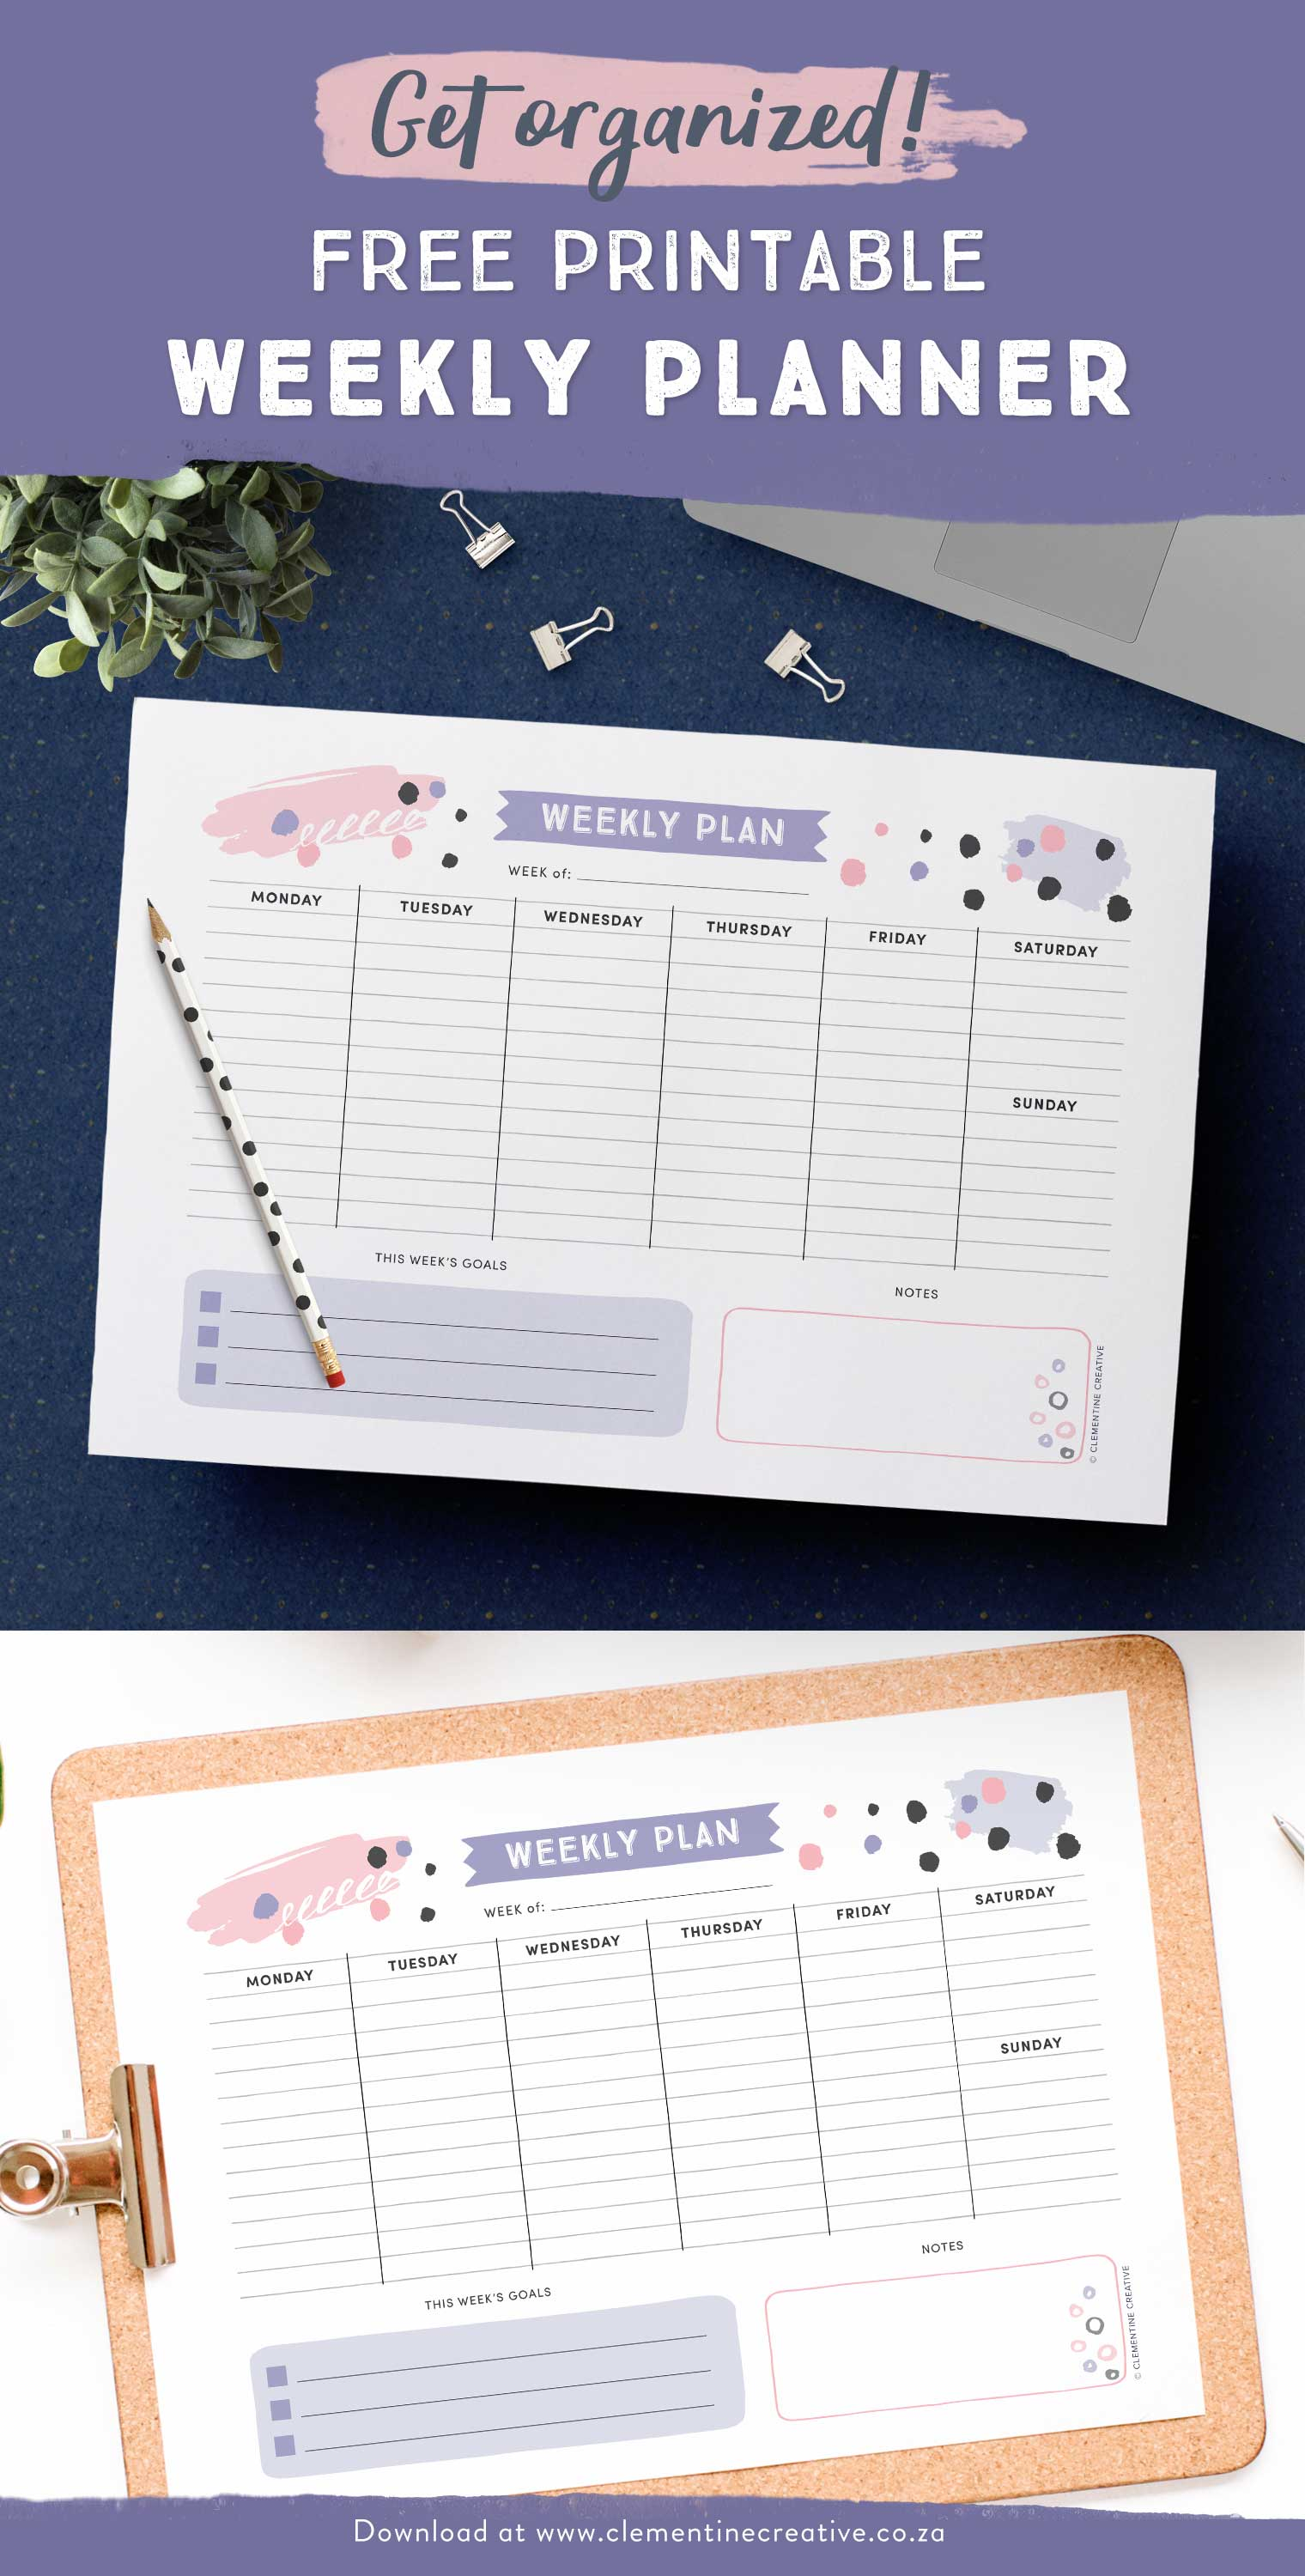 Get organized with this free printable weekly planner! Plan your week from Monday to Sunday. There's even space to write down your top 3 goals for the week so you stay focused on what matters. Click here to download.